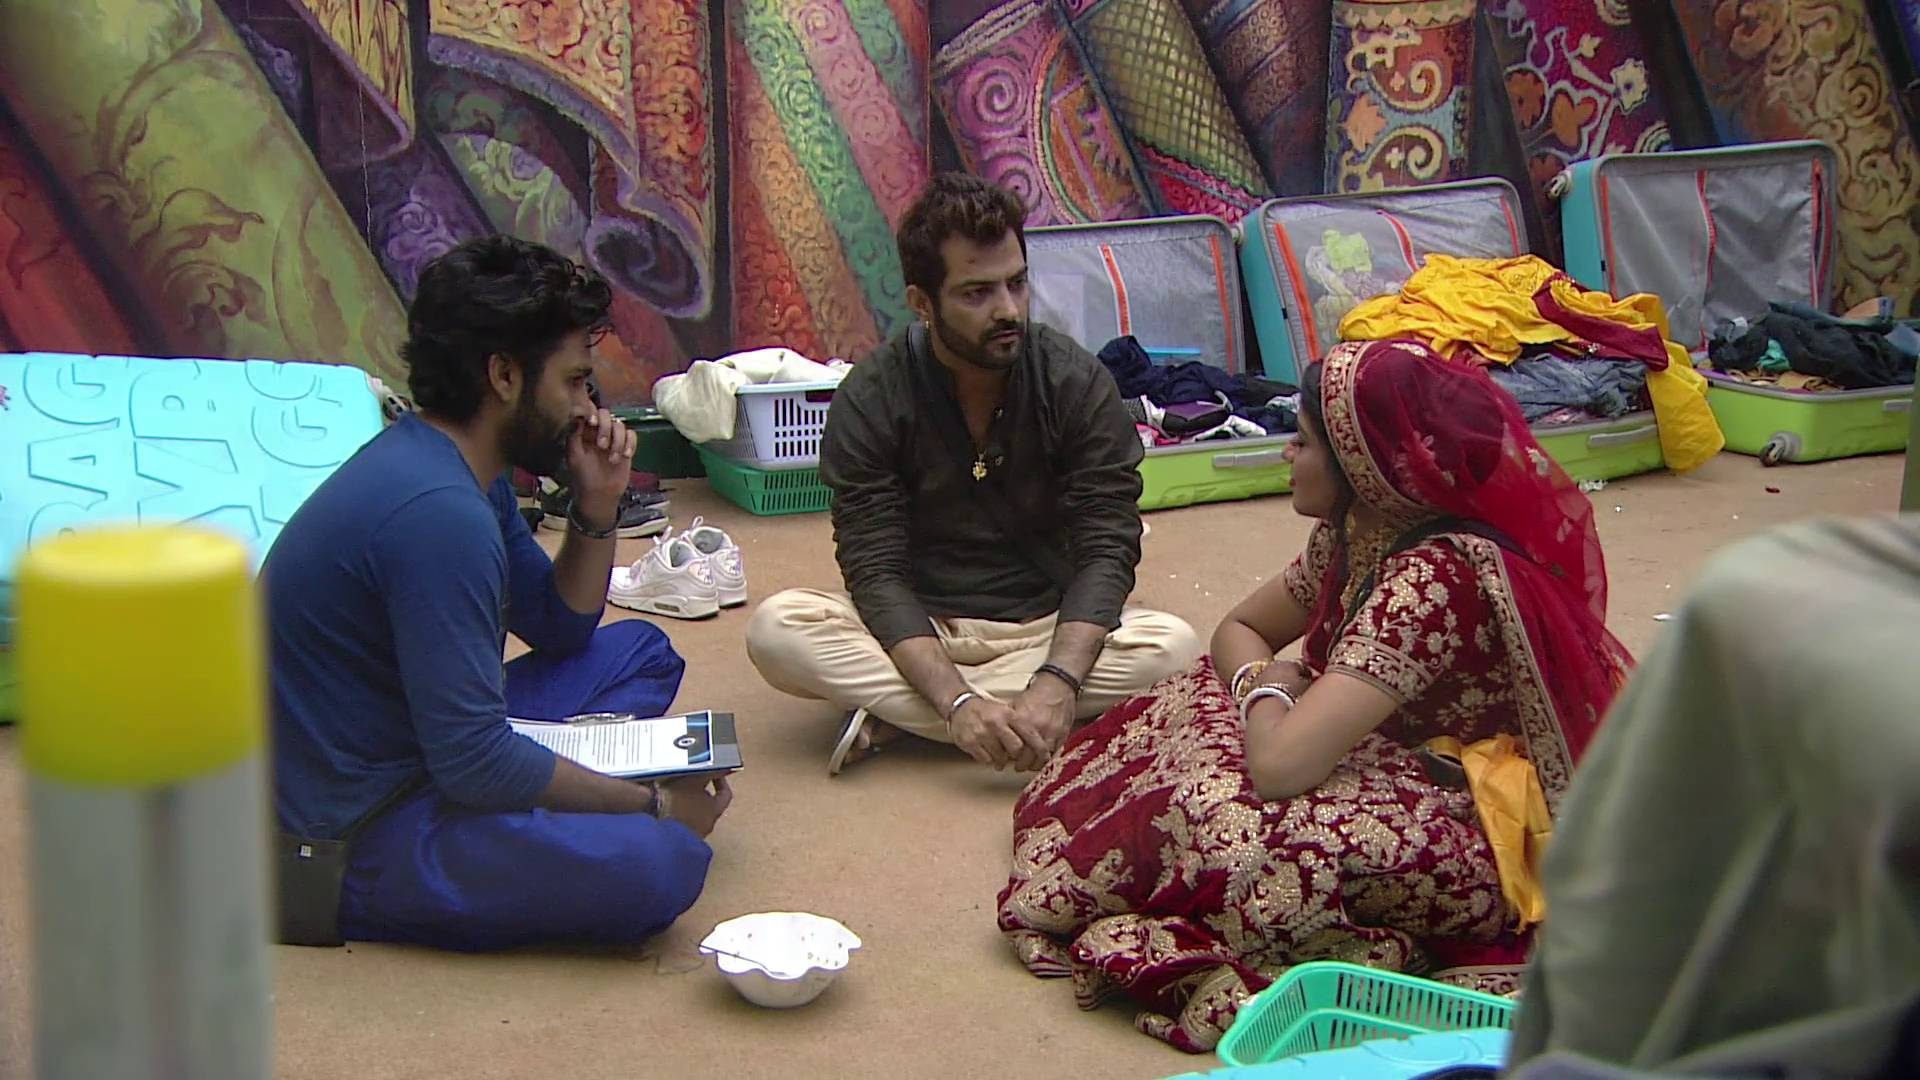 Andekha Action: Manu & Manveer ask Monalisa about Vikrant on Bigg Boss 10